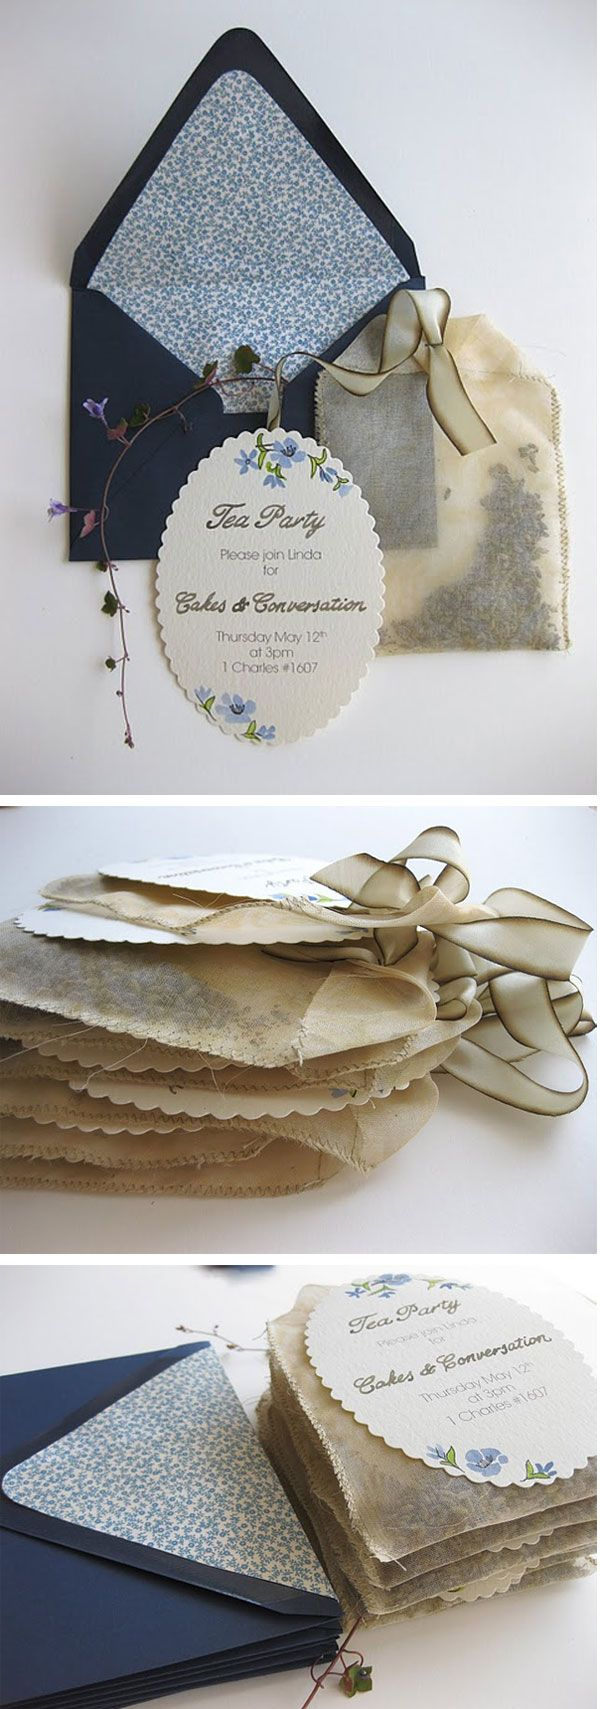 tea party invitations made of tea bags